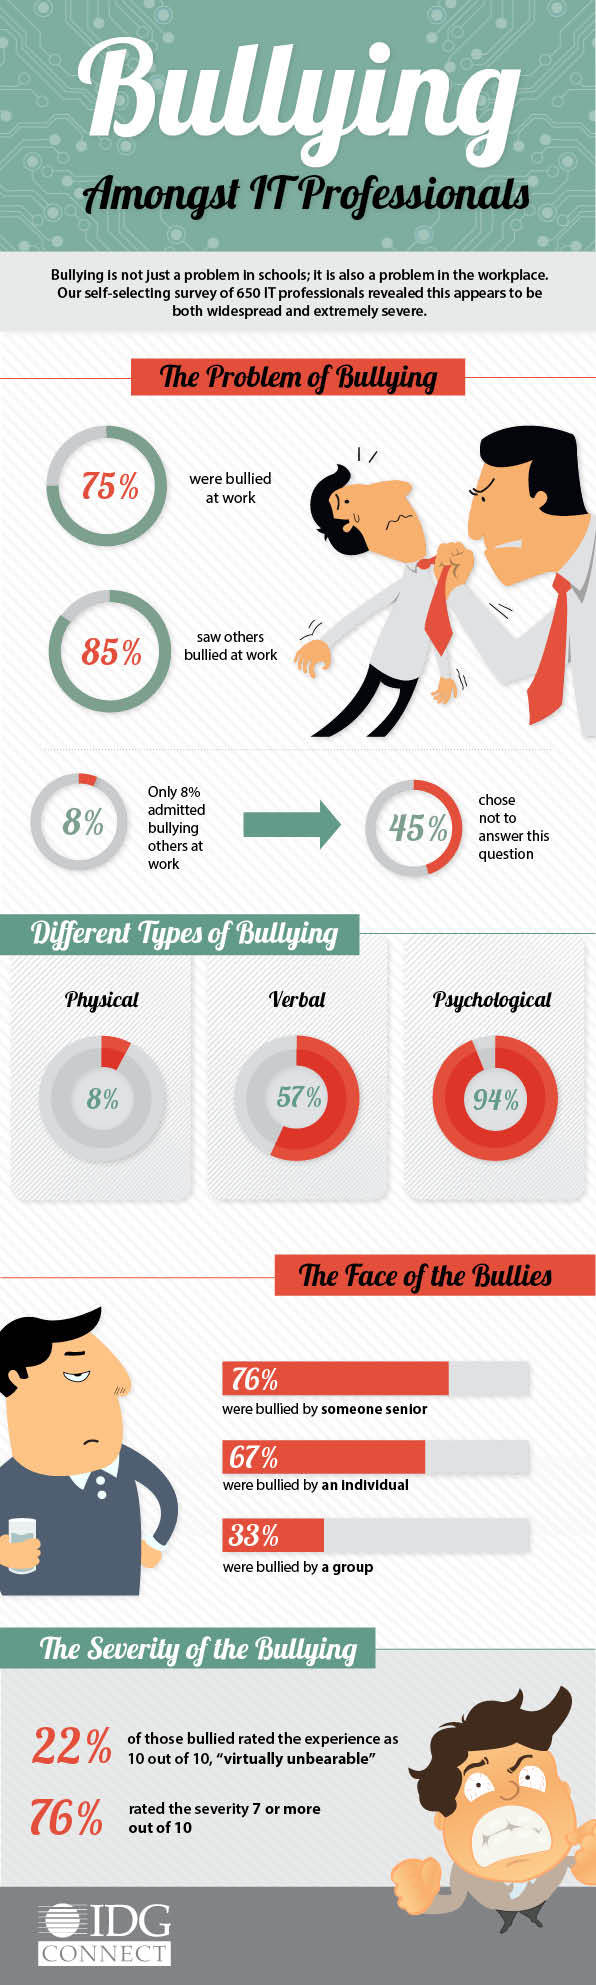 bully-infographic-1